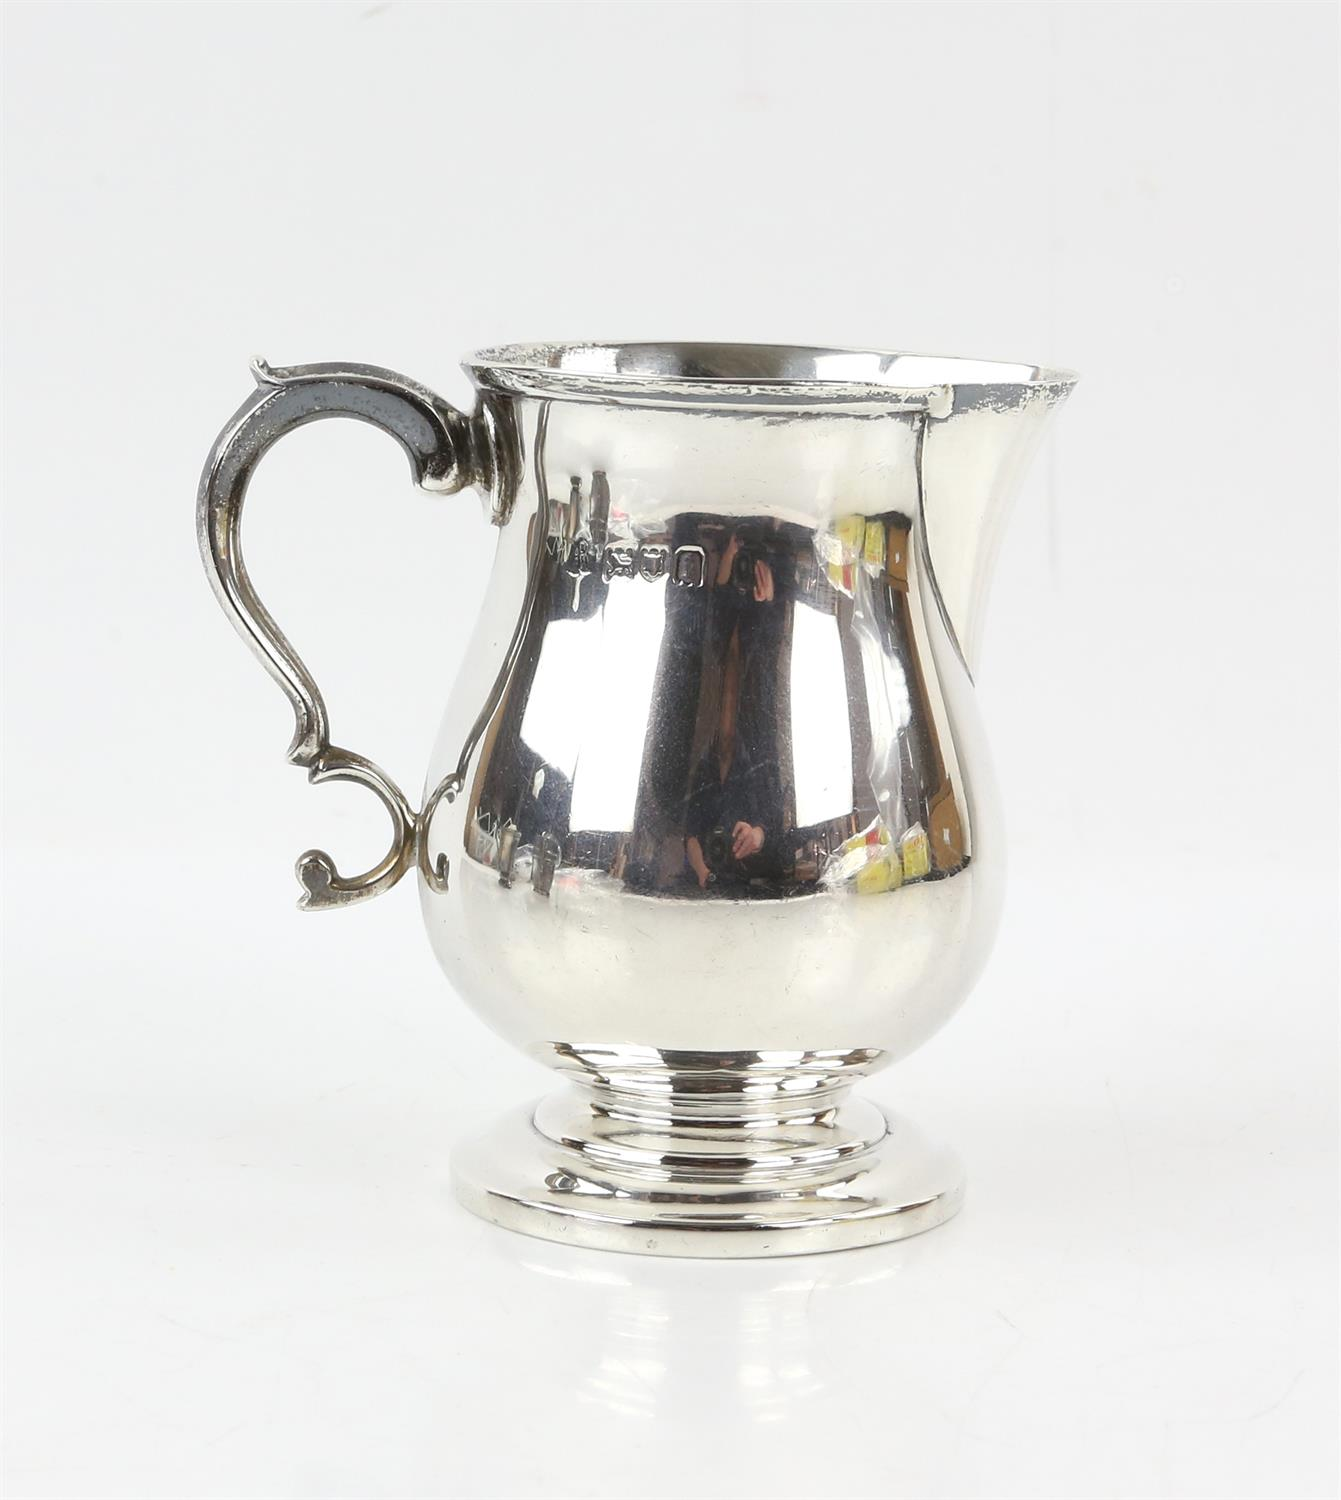 Edward VII silver cream jug with 'S'-scroll handle on round foot, by Ackroyd Rhodes, London, 1904, - Image 2 of 7